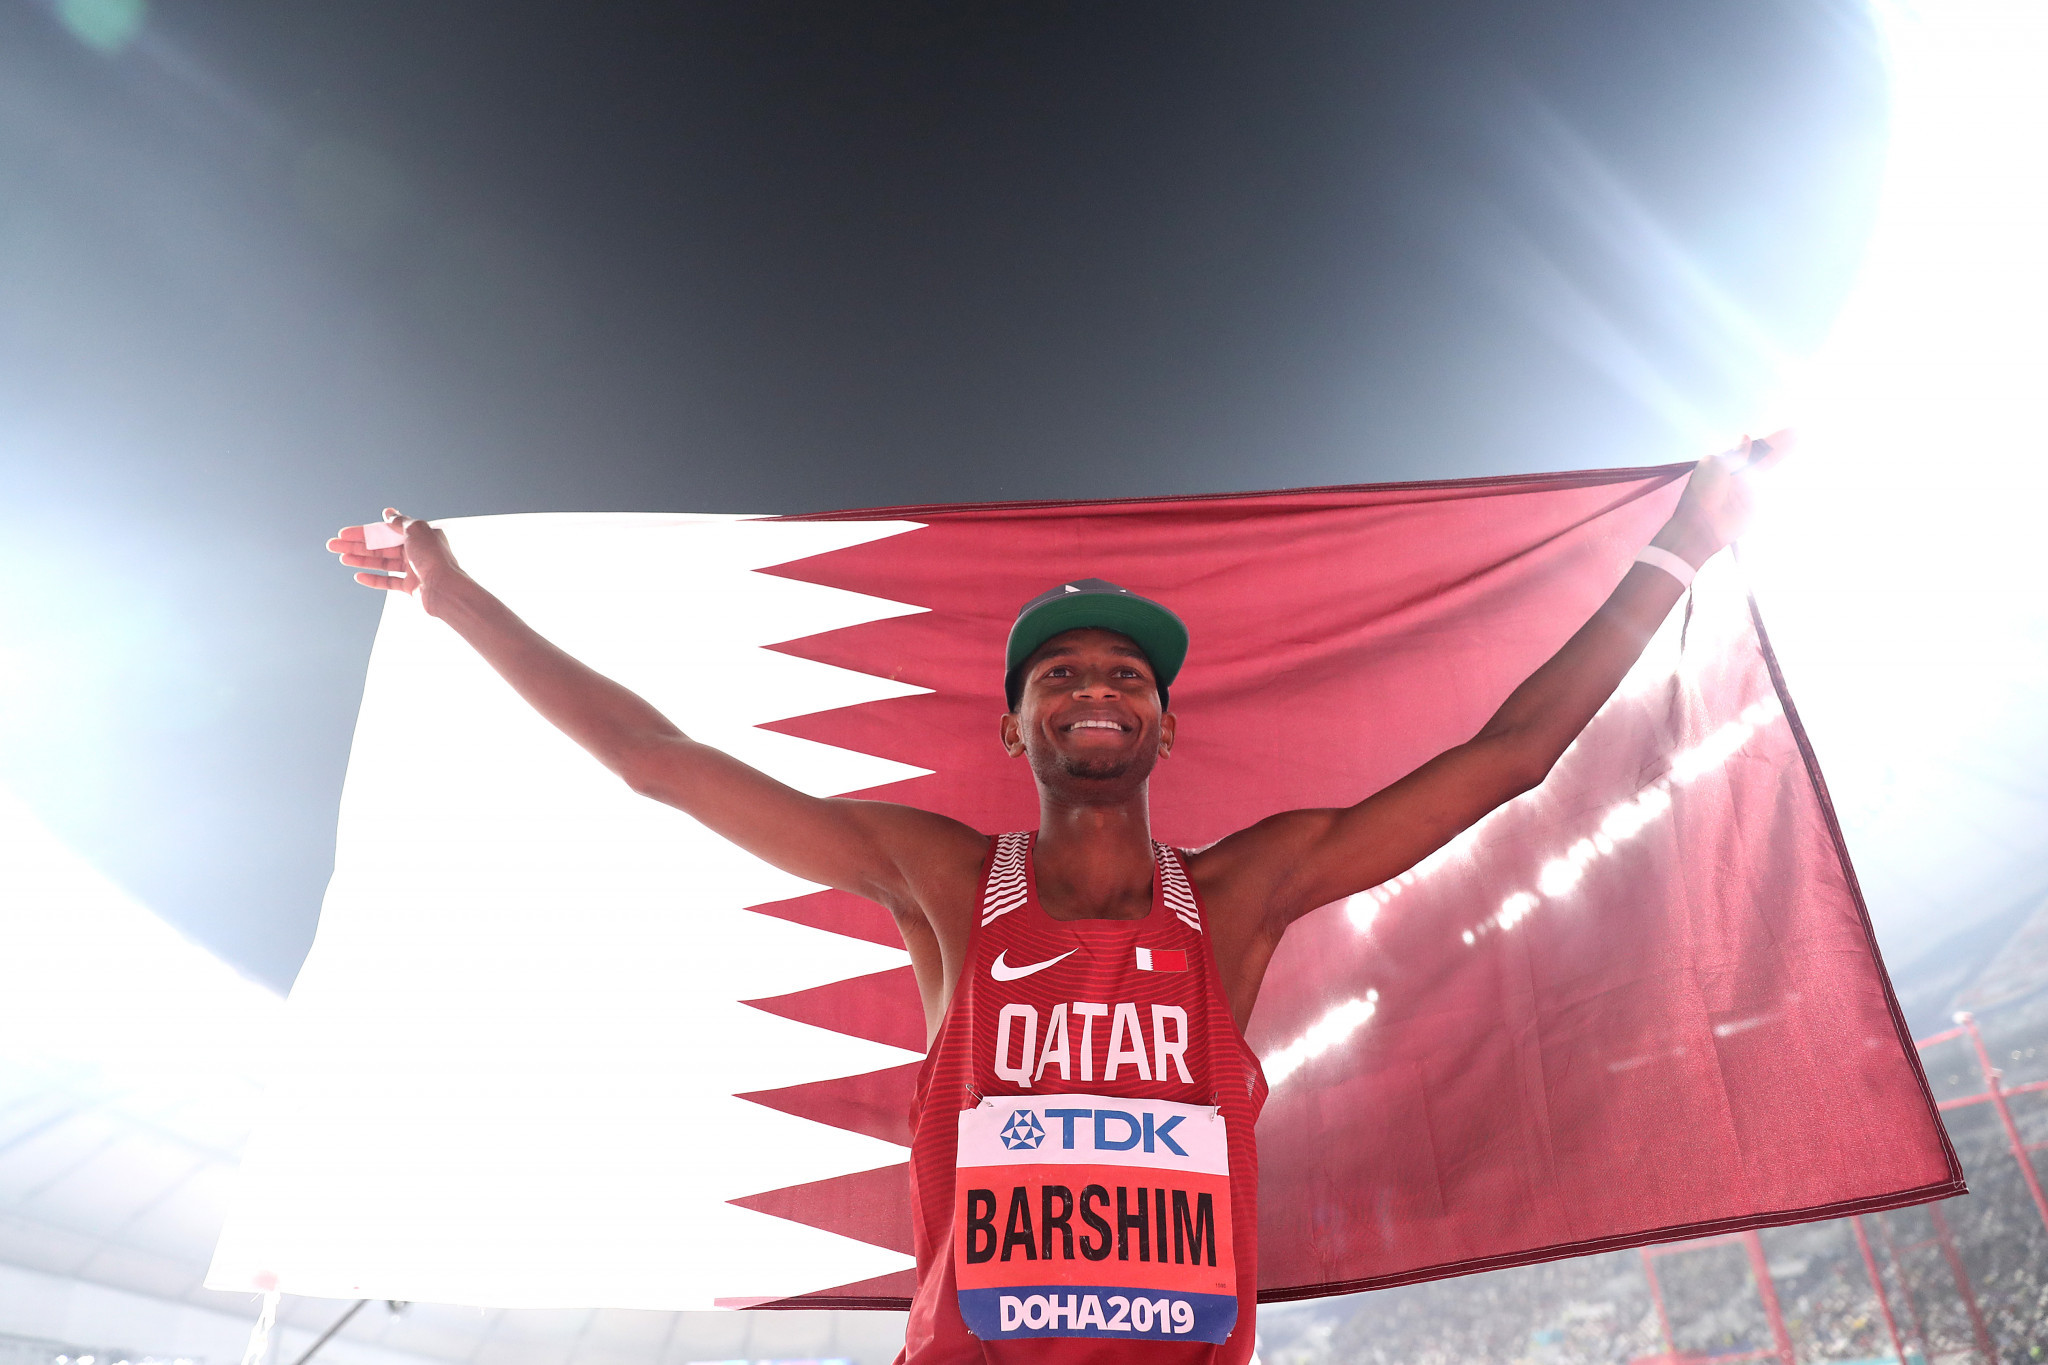 High jump star Barshim named male athlete of the year by Qatar Olympic Committee